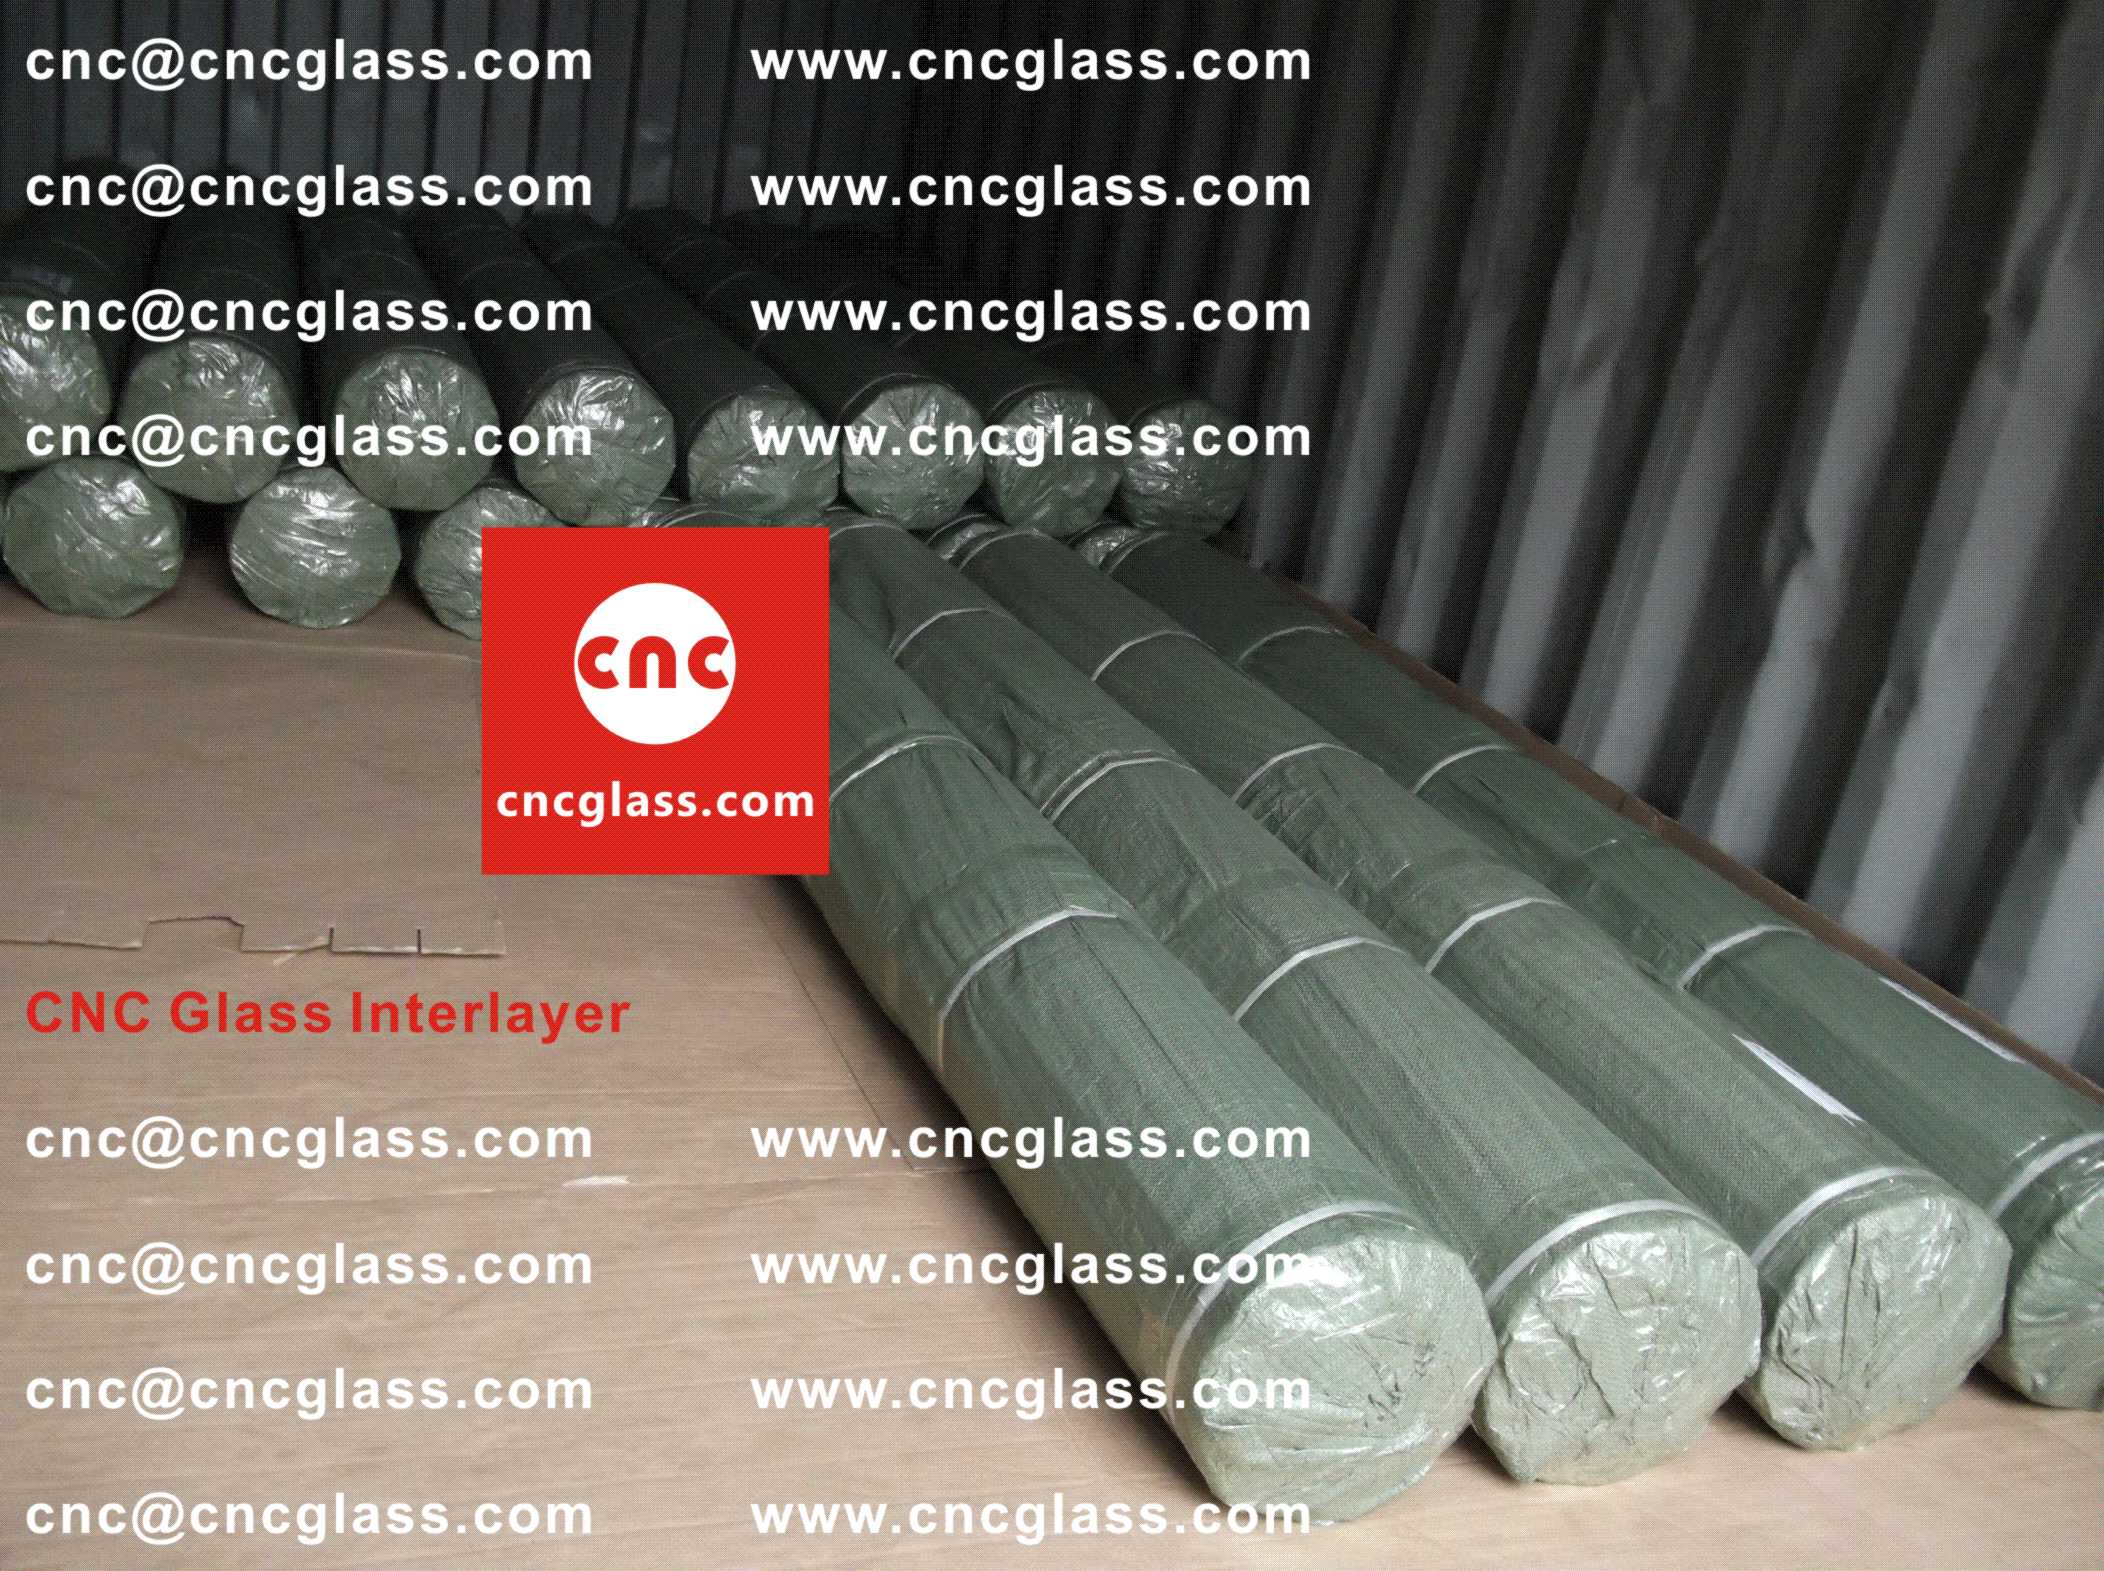 003 Packing Loading EVA Interlayer Film for Safety Laminated Glazing